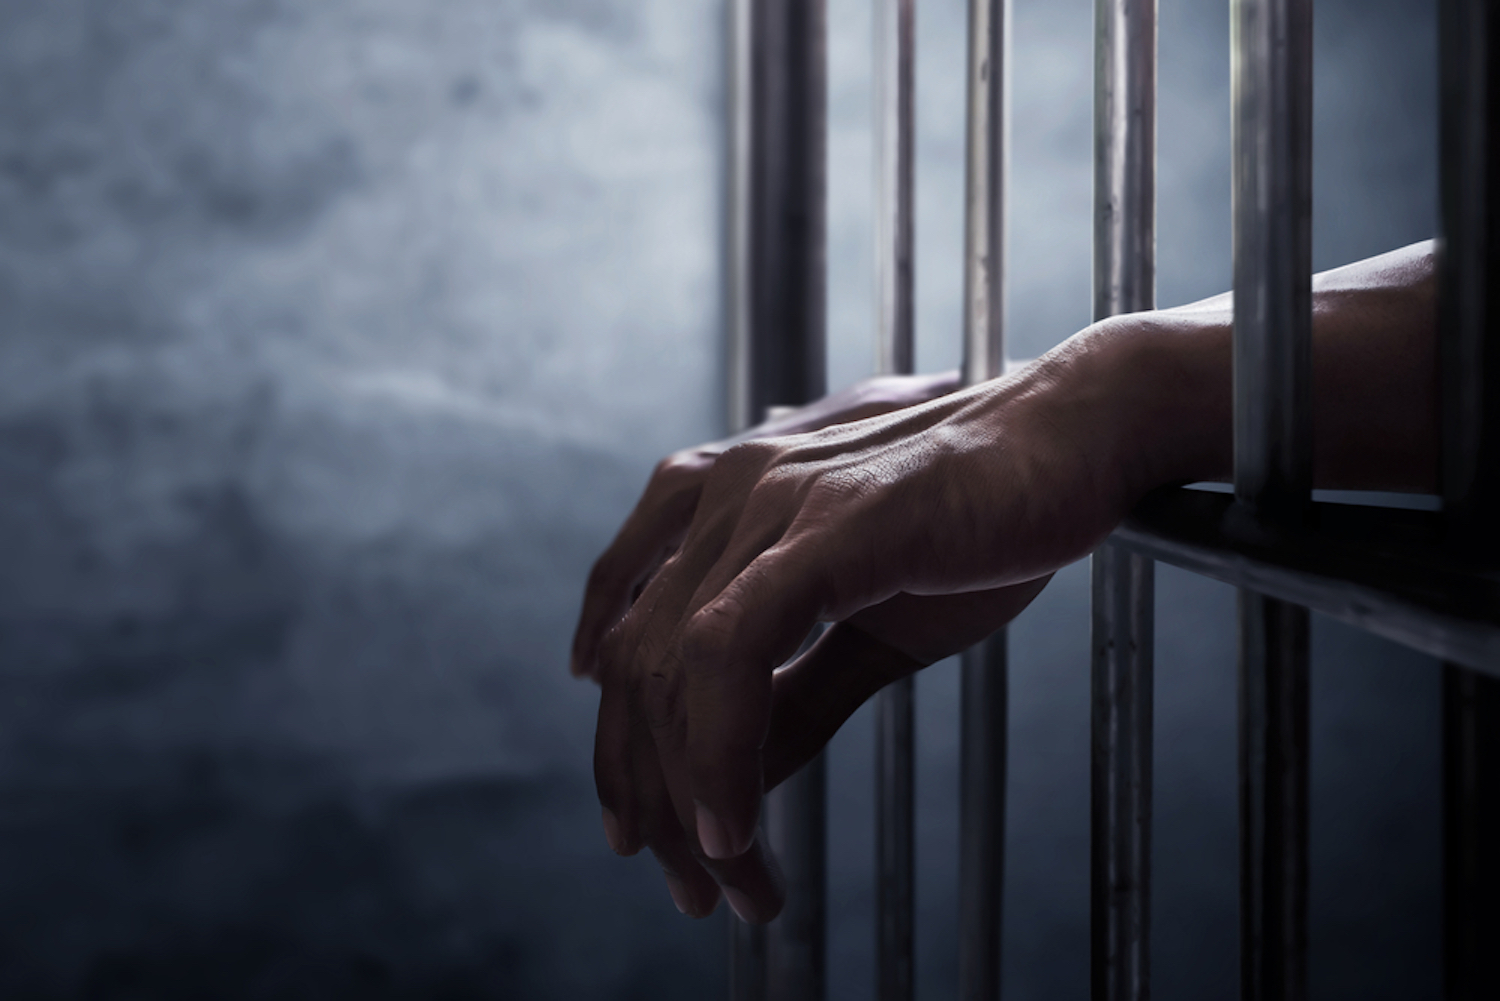 Why the Nationwide Prison Strike Should Matter to the Cannabis Industry